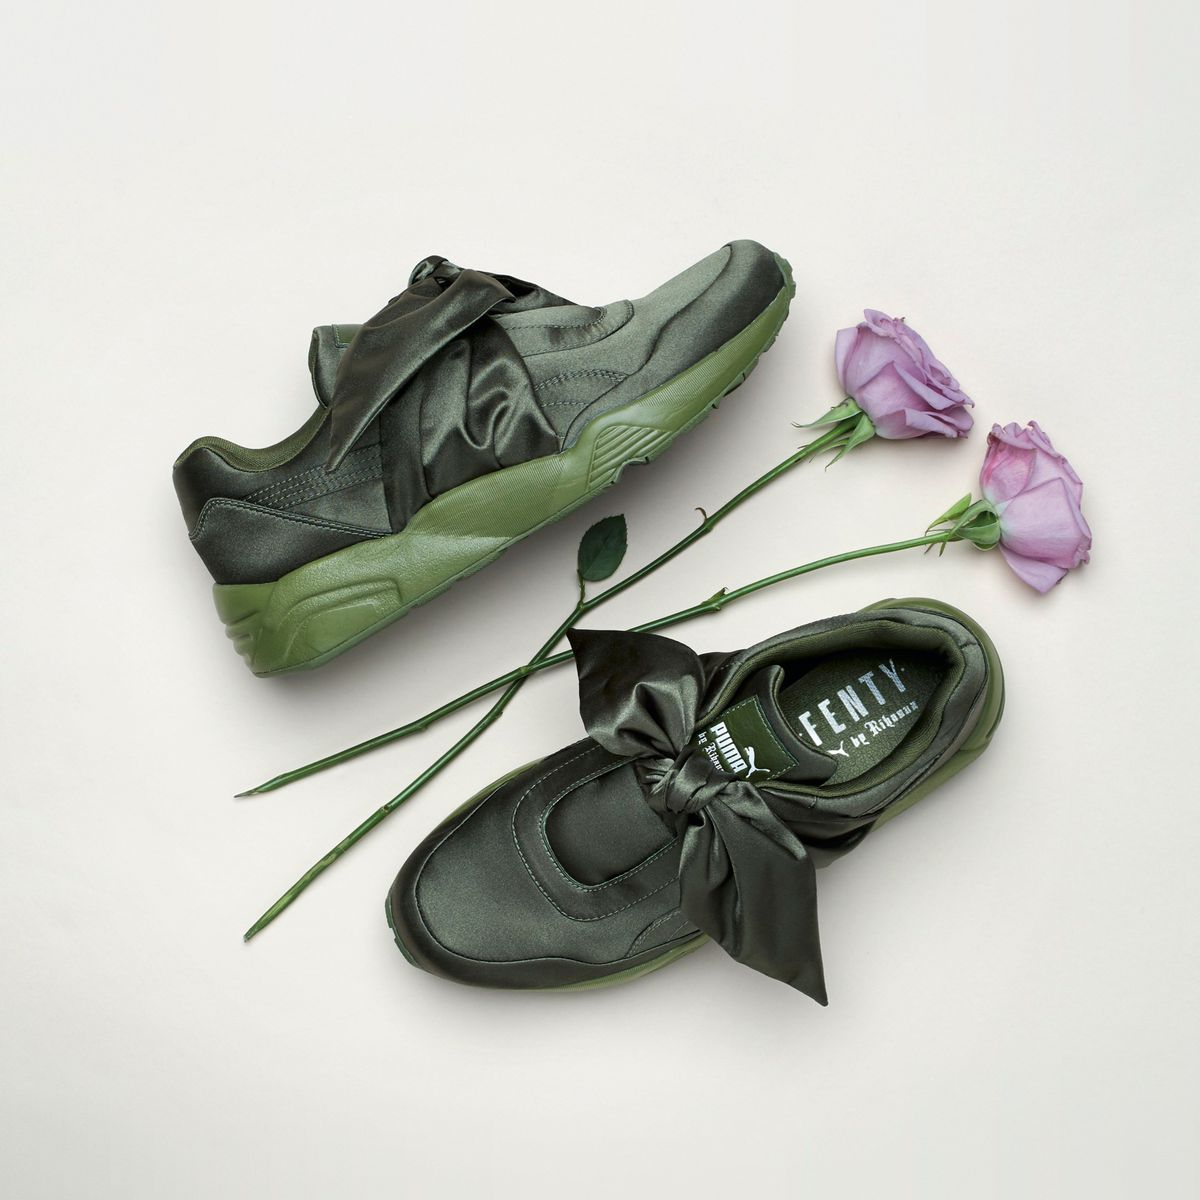 Green sneakers with satin bow laces